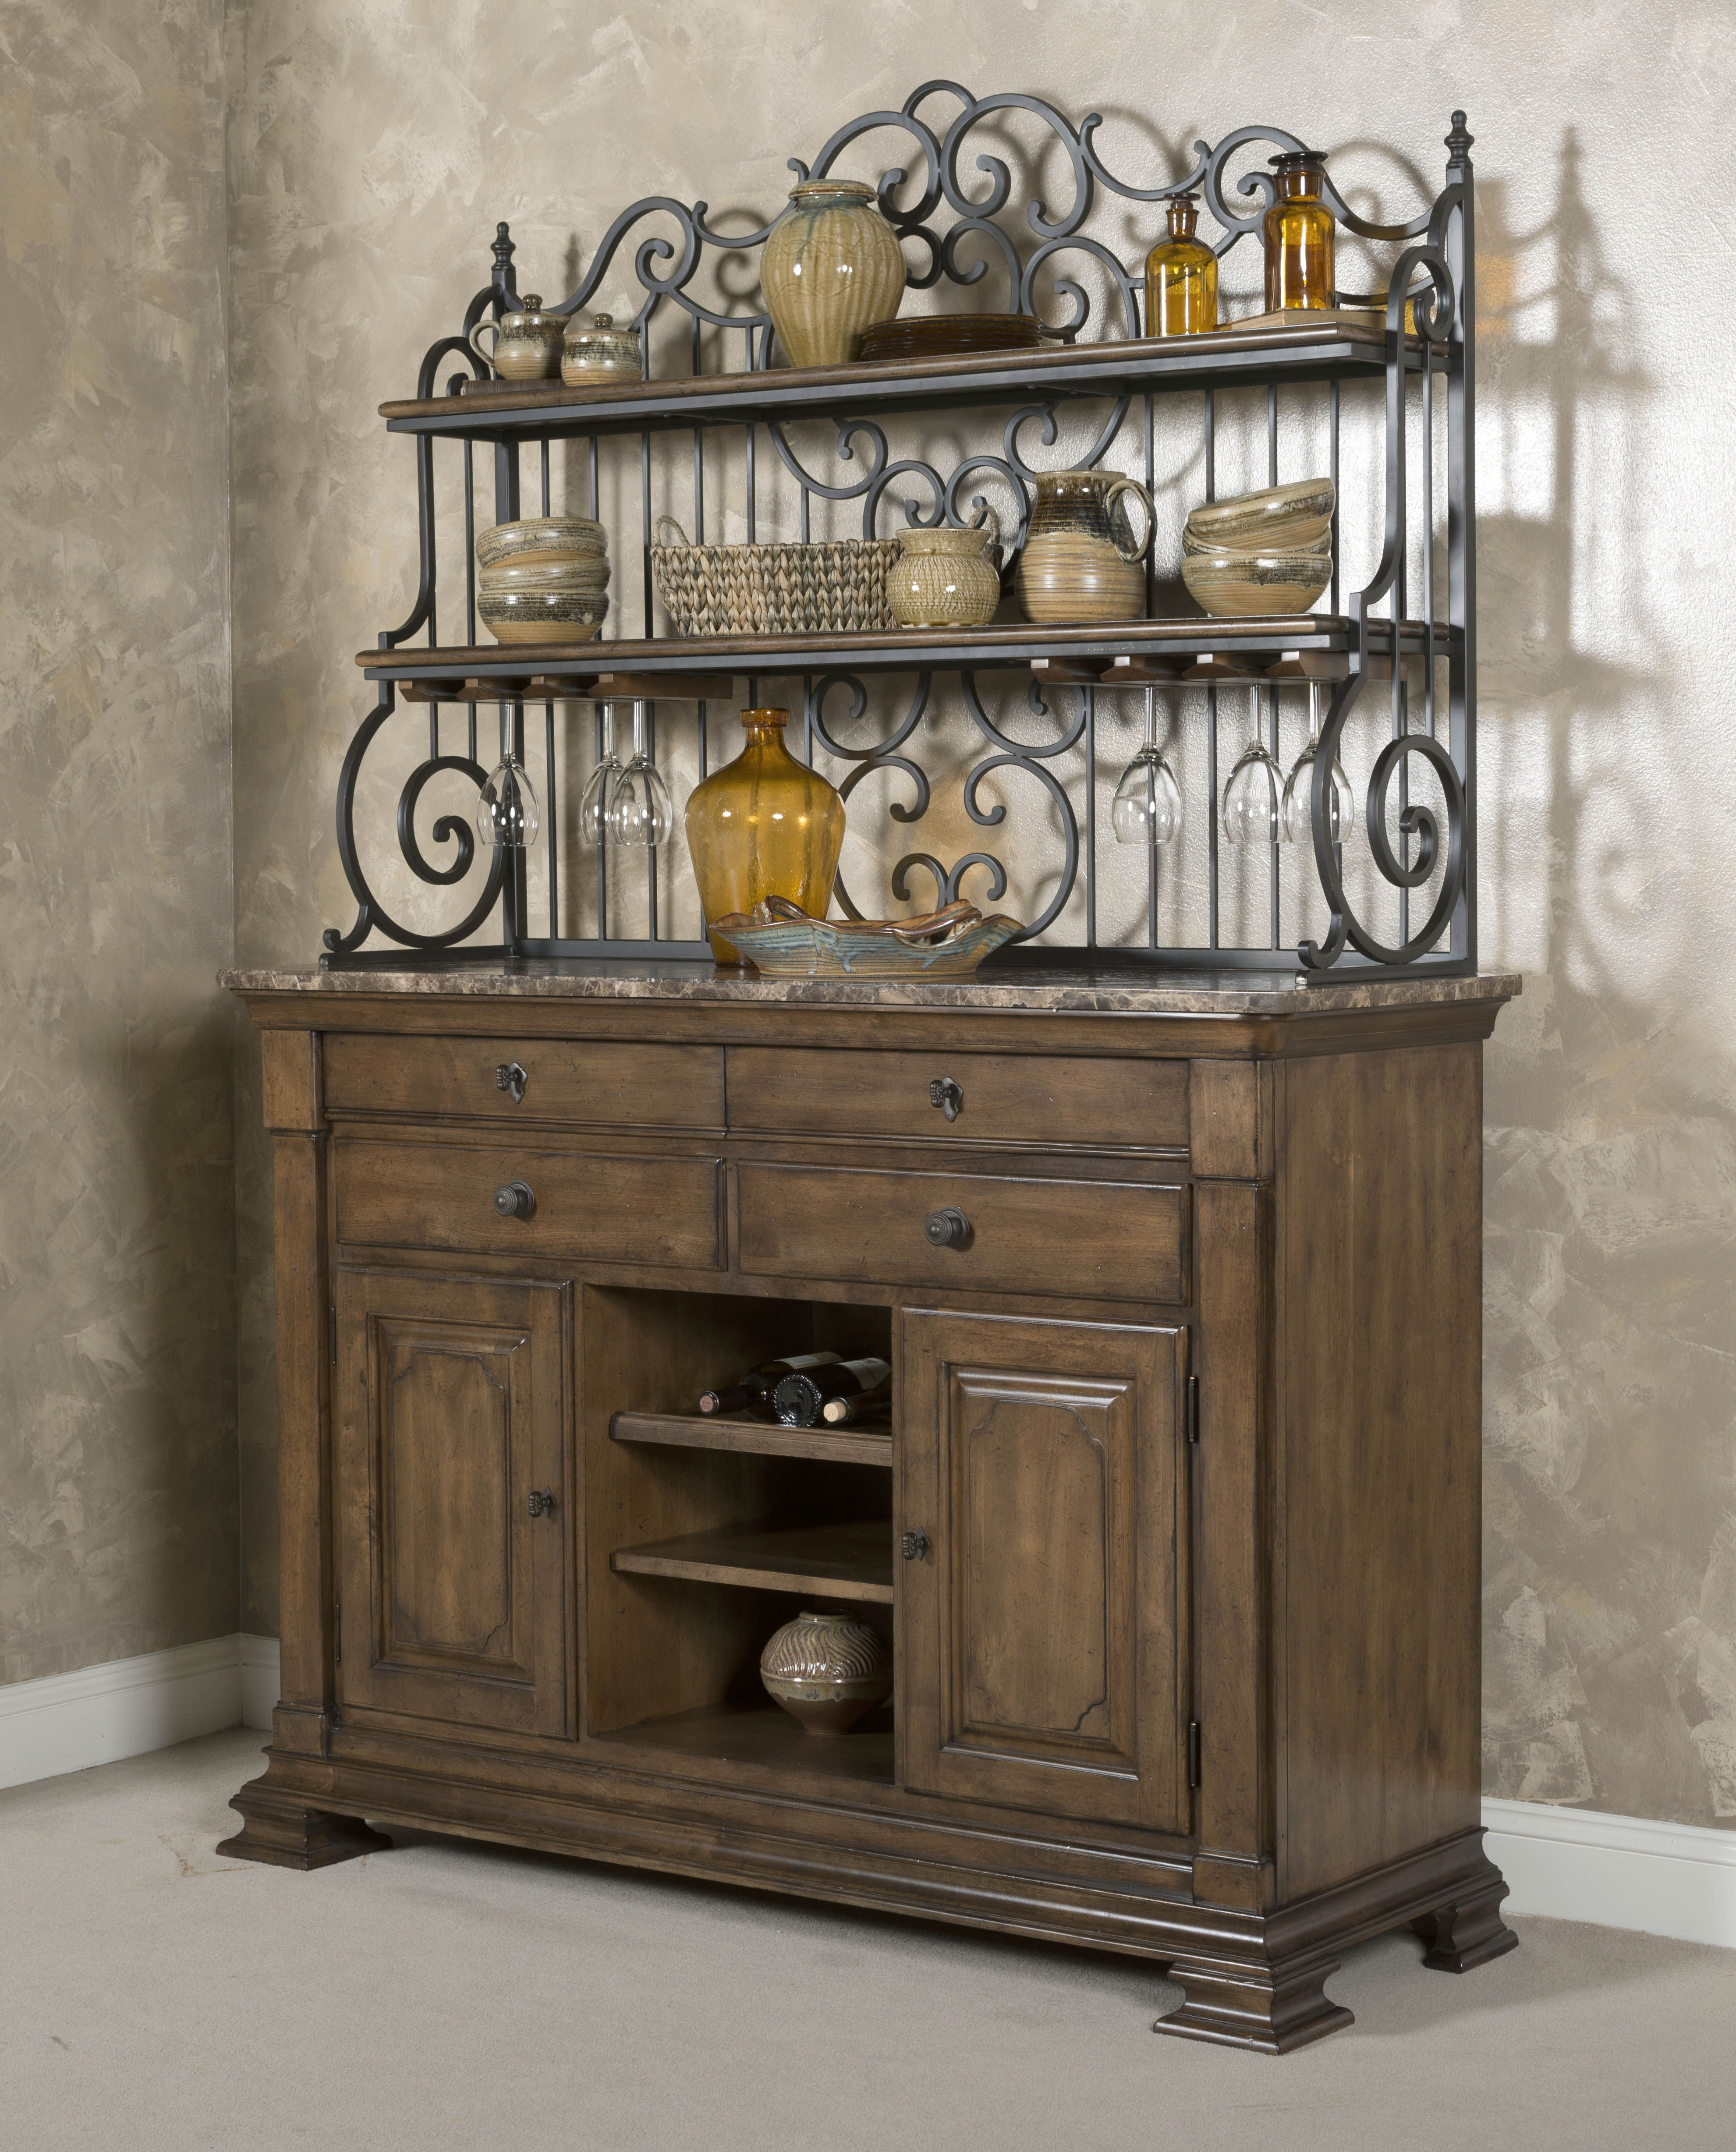 The Portolone Collection Is Made Of Solid Alder And Has An Old